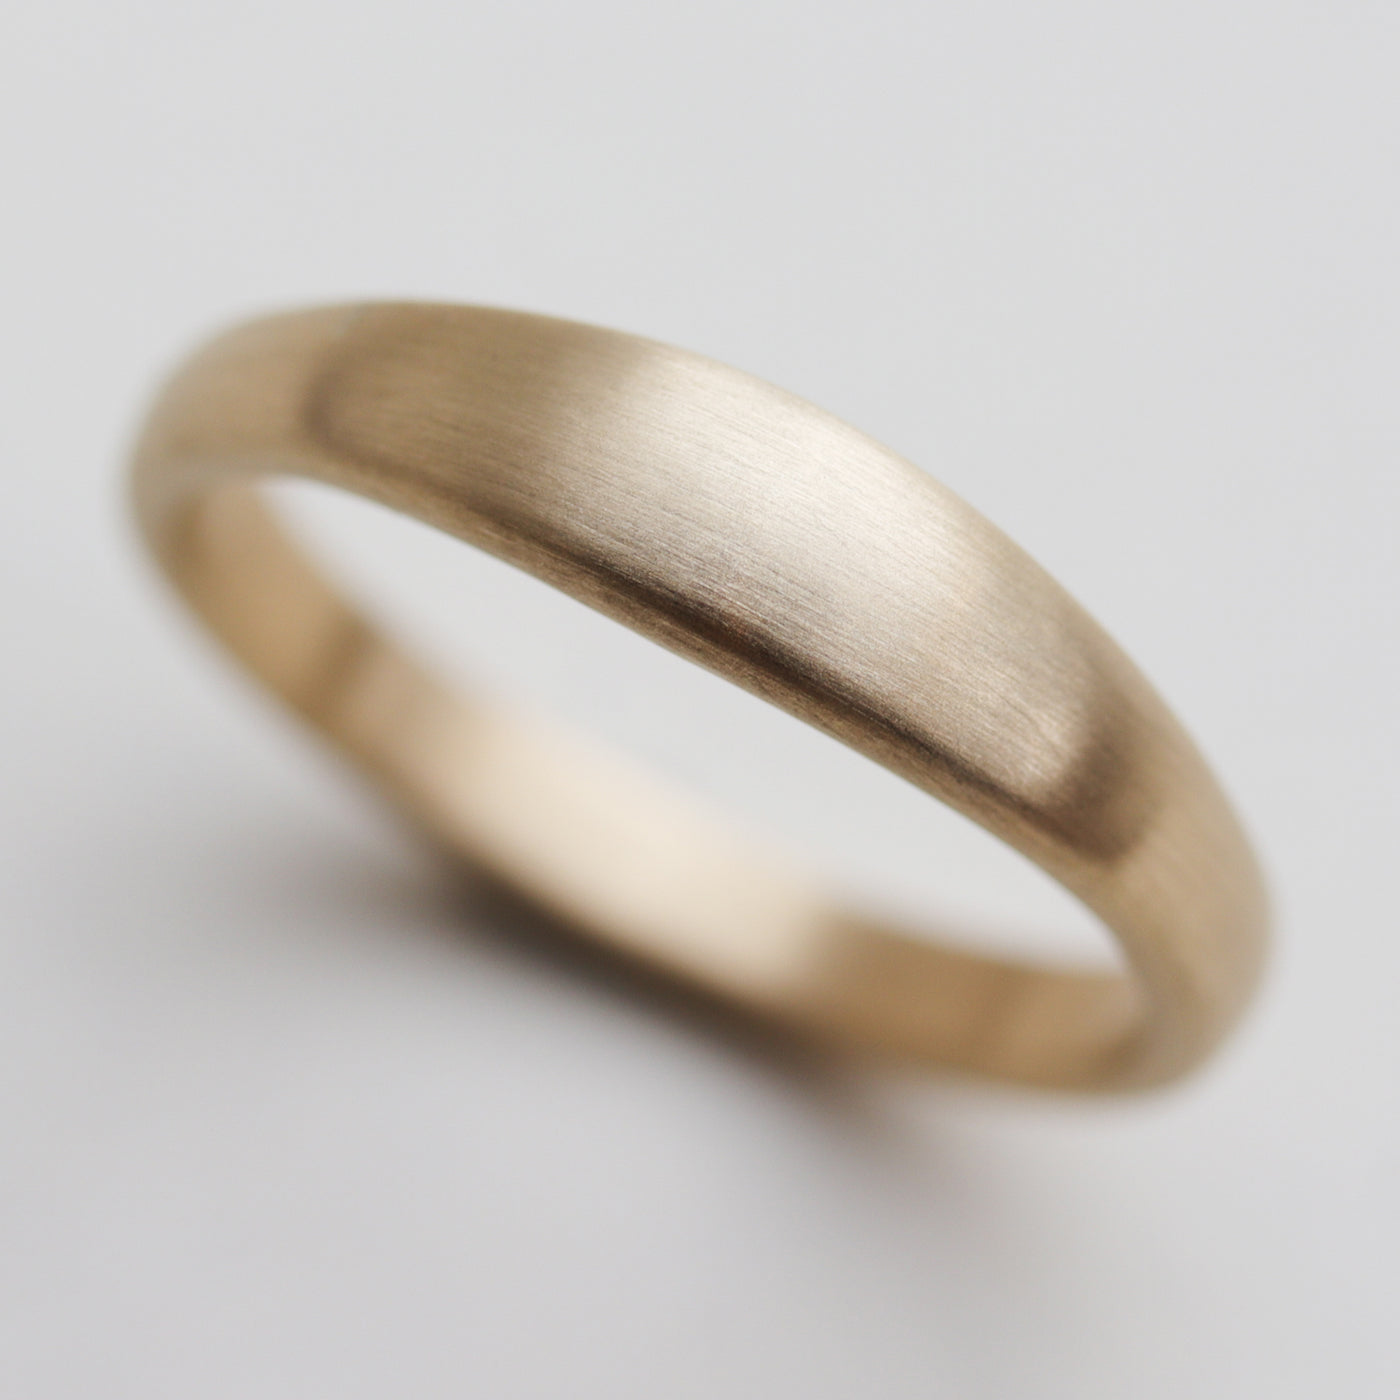 Size 7 - Tapered Wedding Band